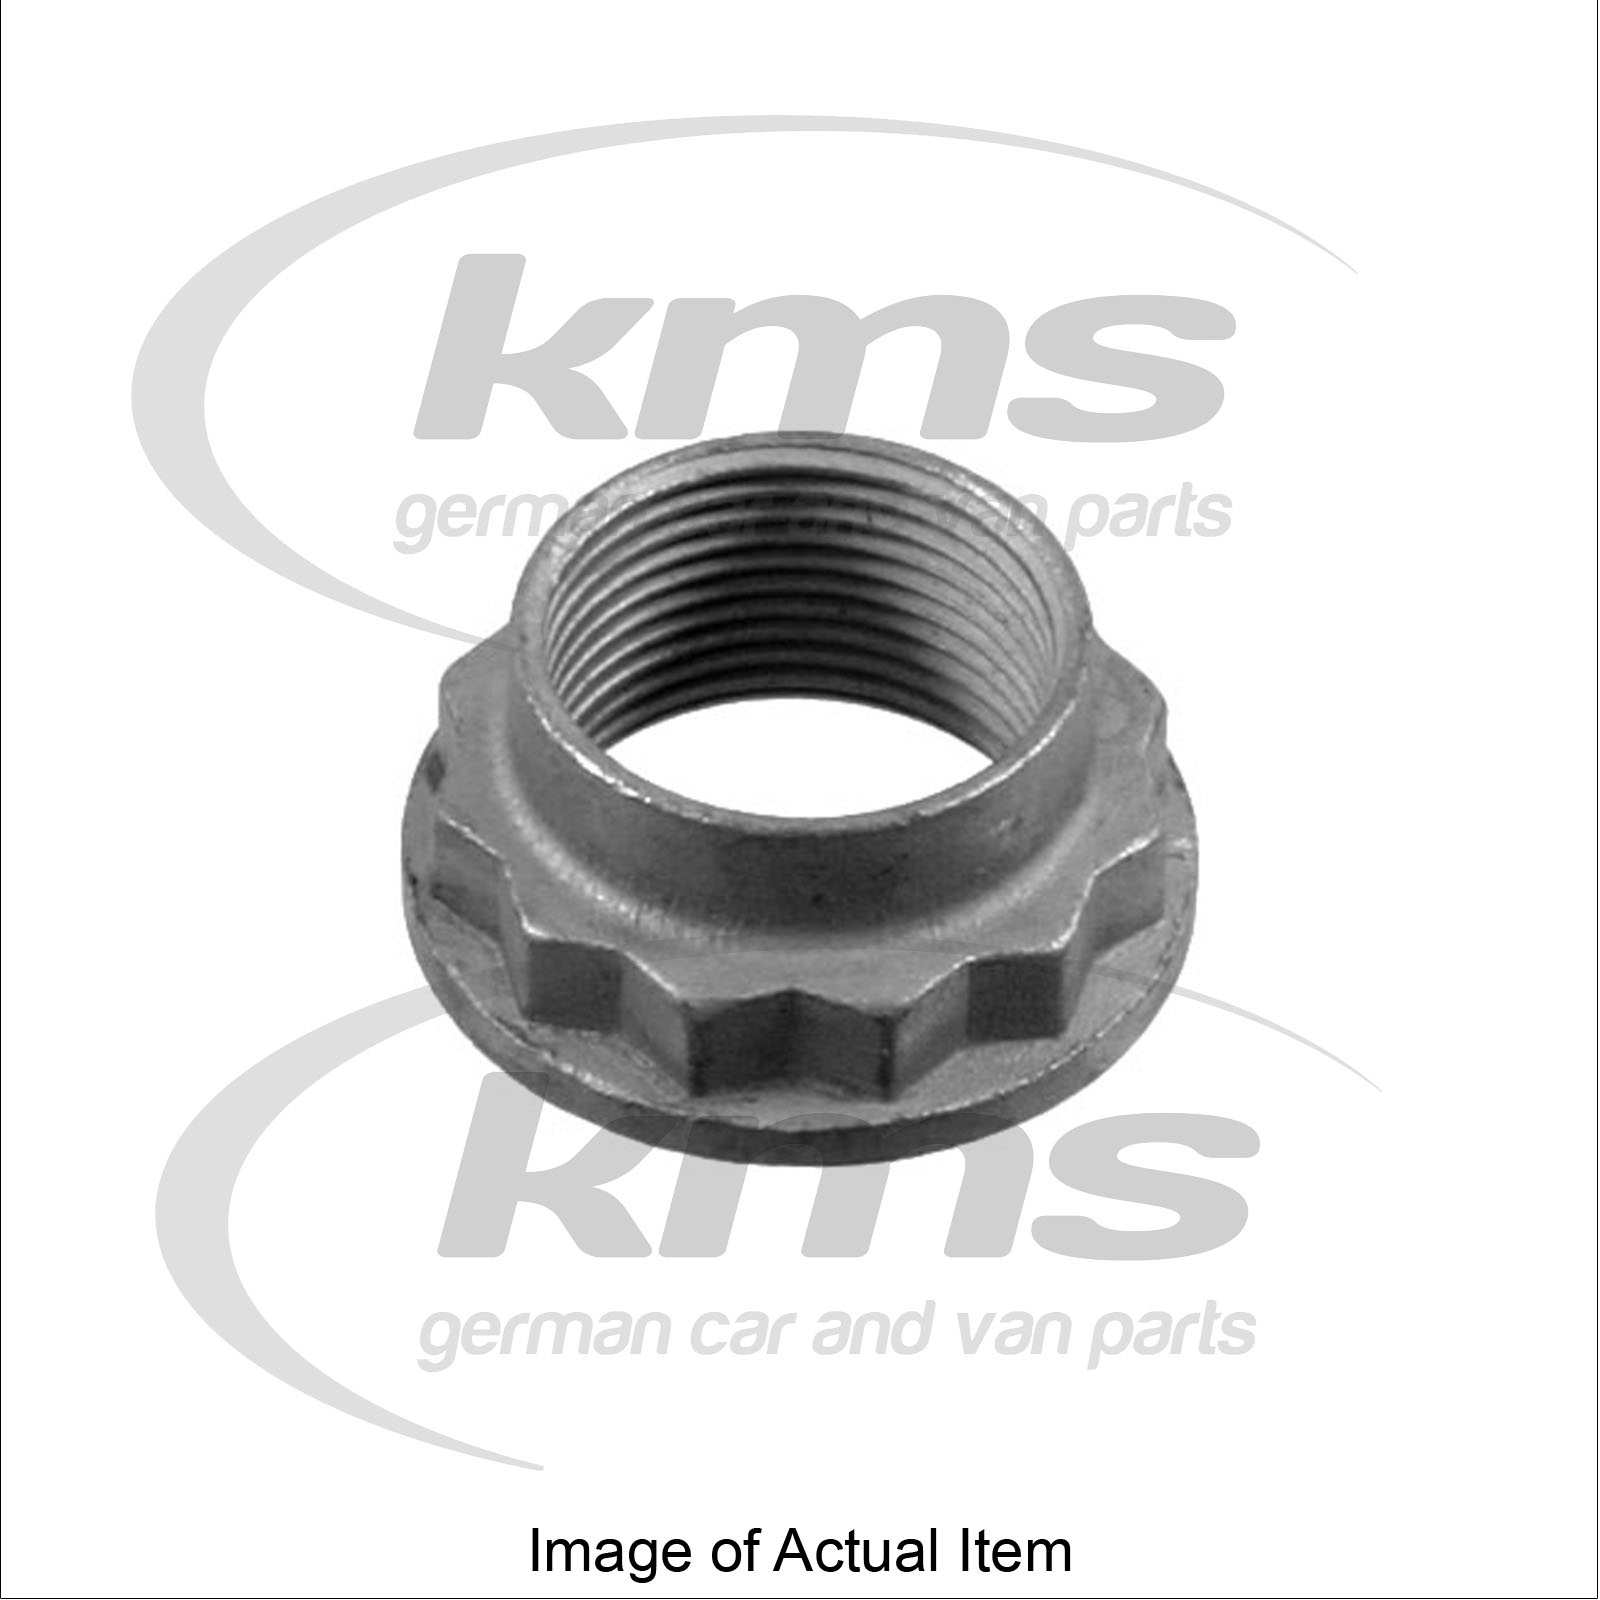 Wheel hub nut mercedes benz slk class convertible Mercedes benz wheel nuts